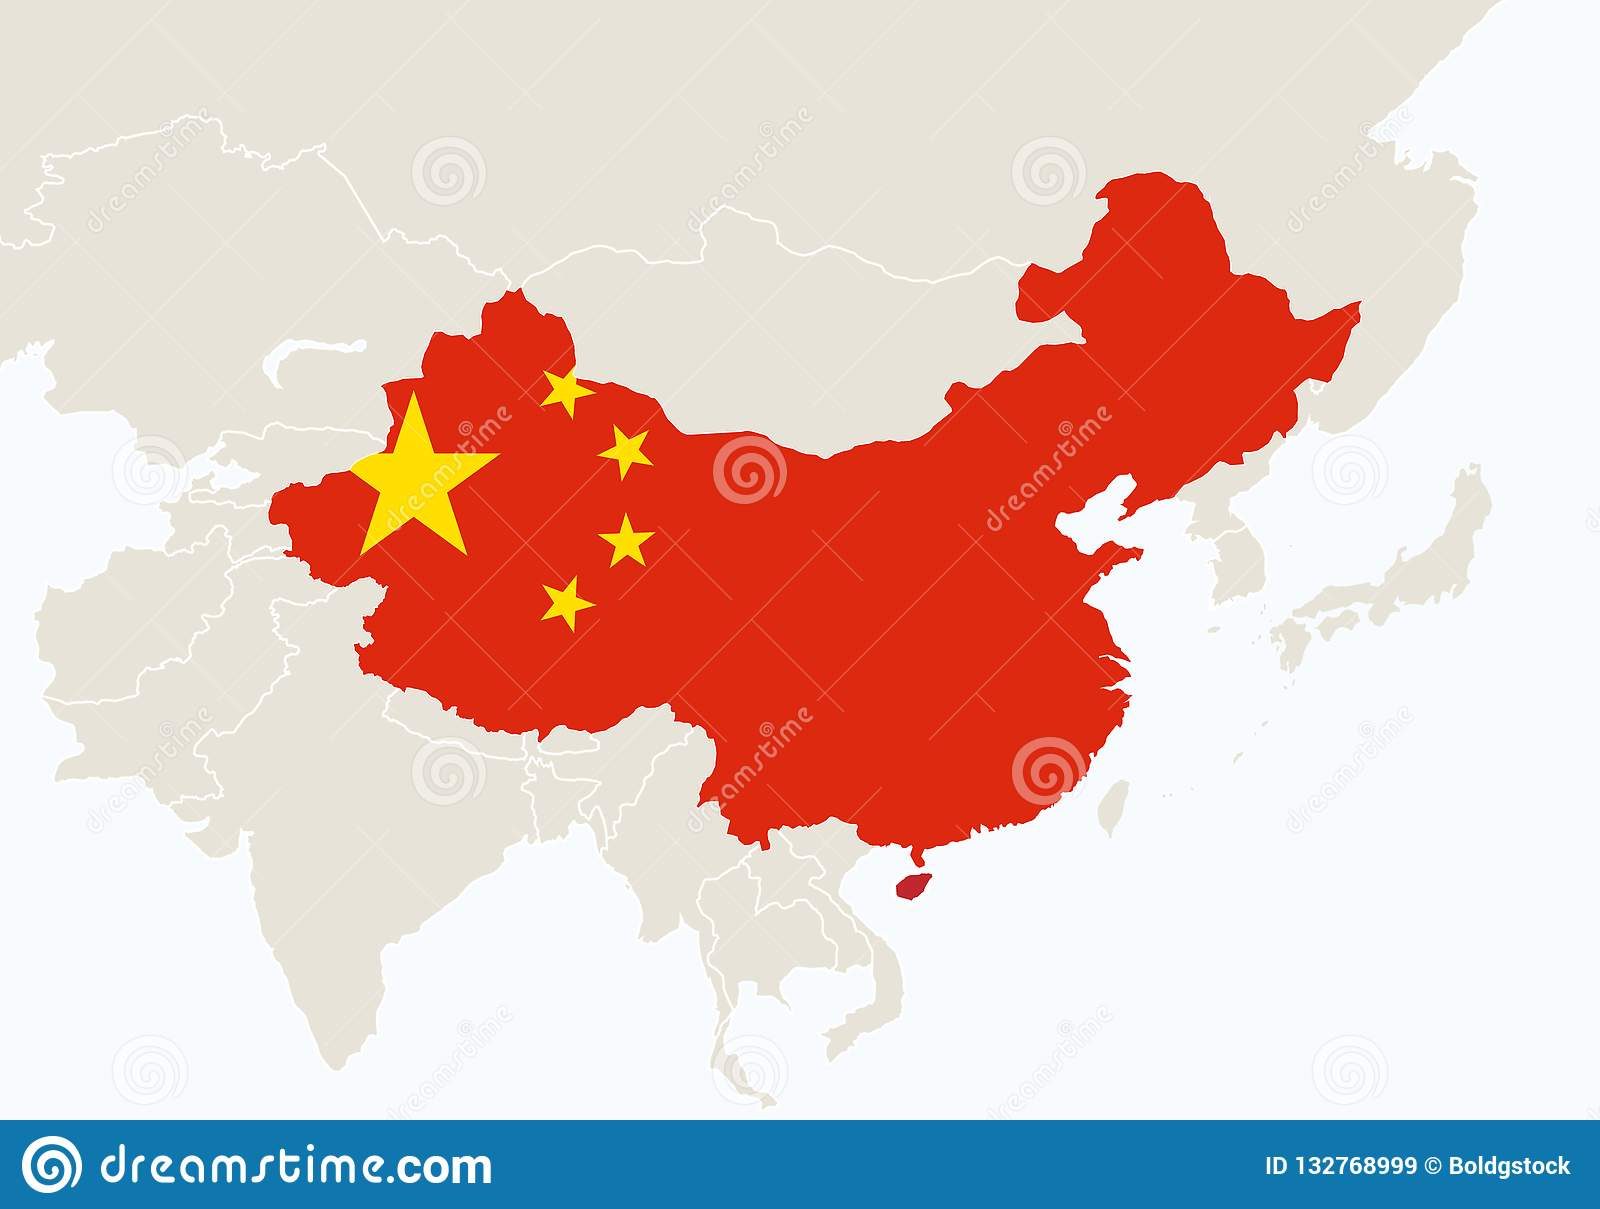 China On Map Of Asia.Asia With Highlighted China Map Stock Vector Illustration Of